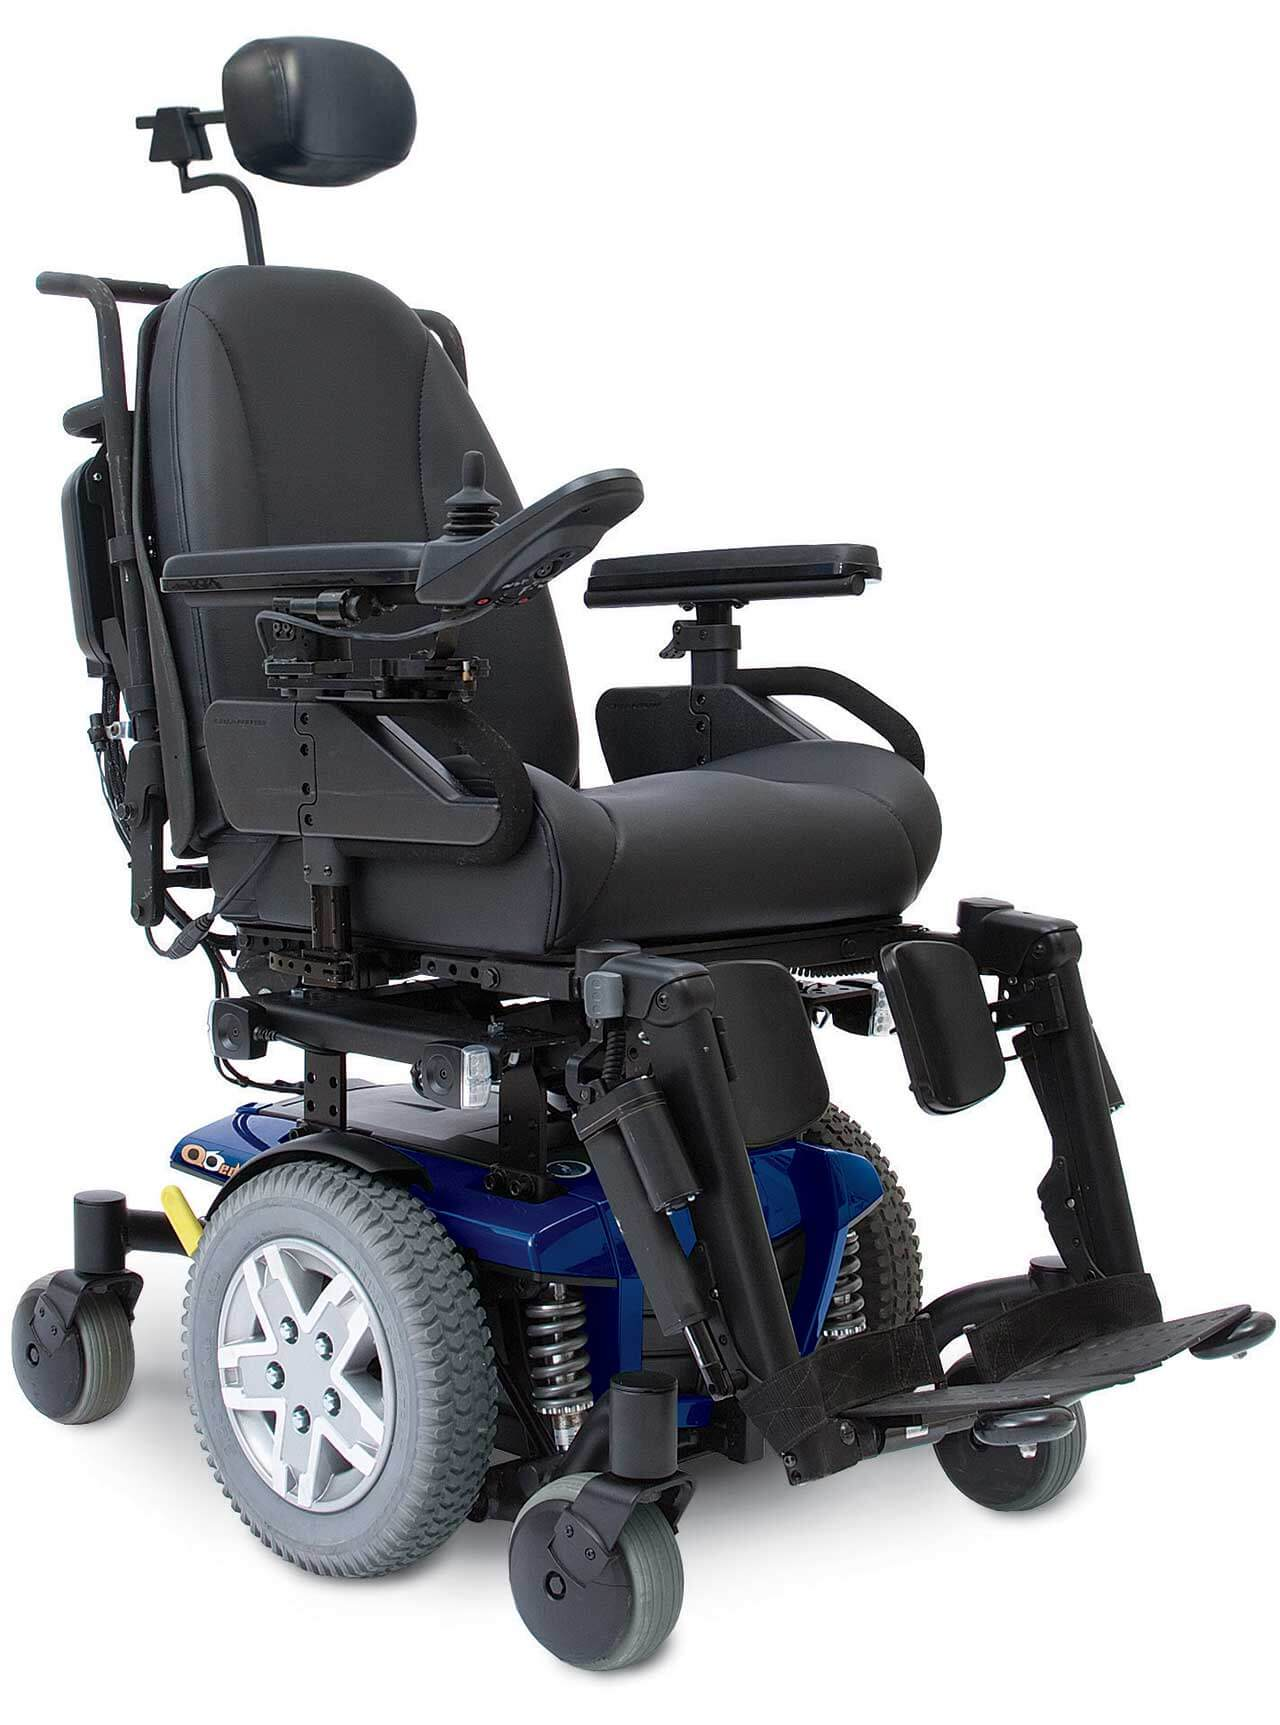 quantum 600 power chair x rocker pulse gaming pride q6 edge powerchair electric wheelchair for hire or sale